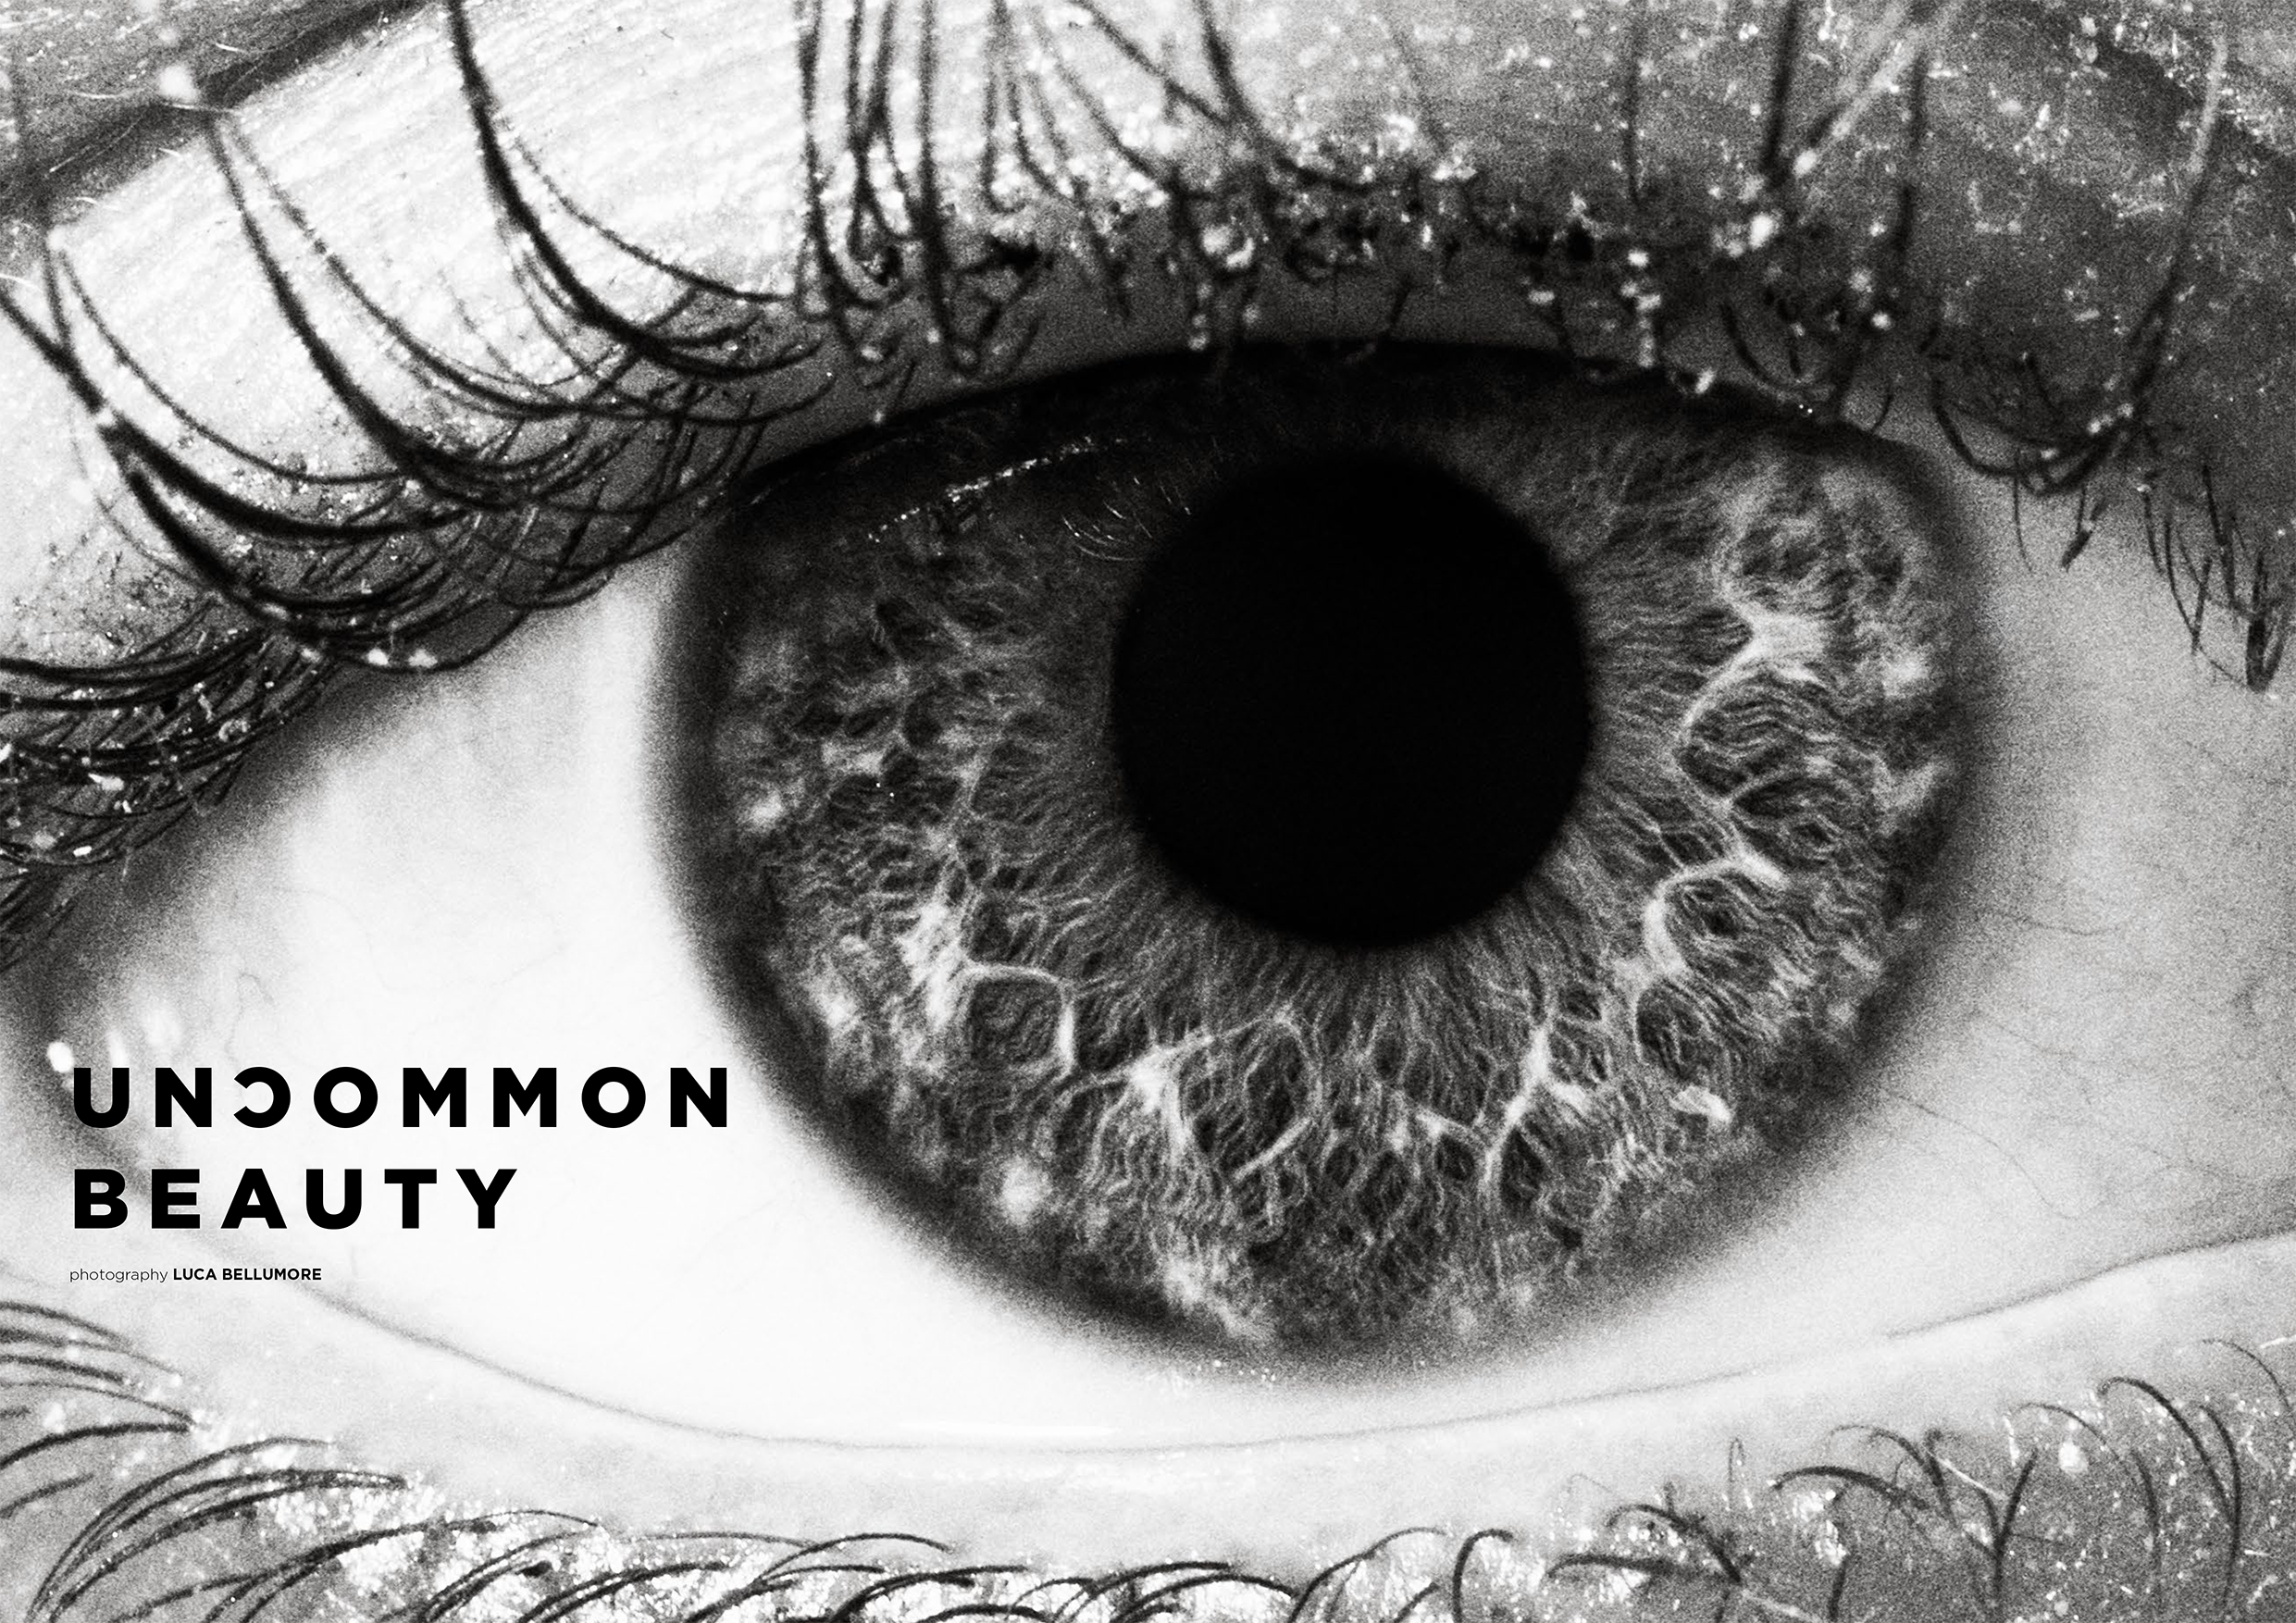 """UNCOMMON BEAUTY"" PHOTOGRAPHER : Luca Bellumore   view story"